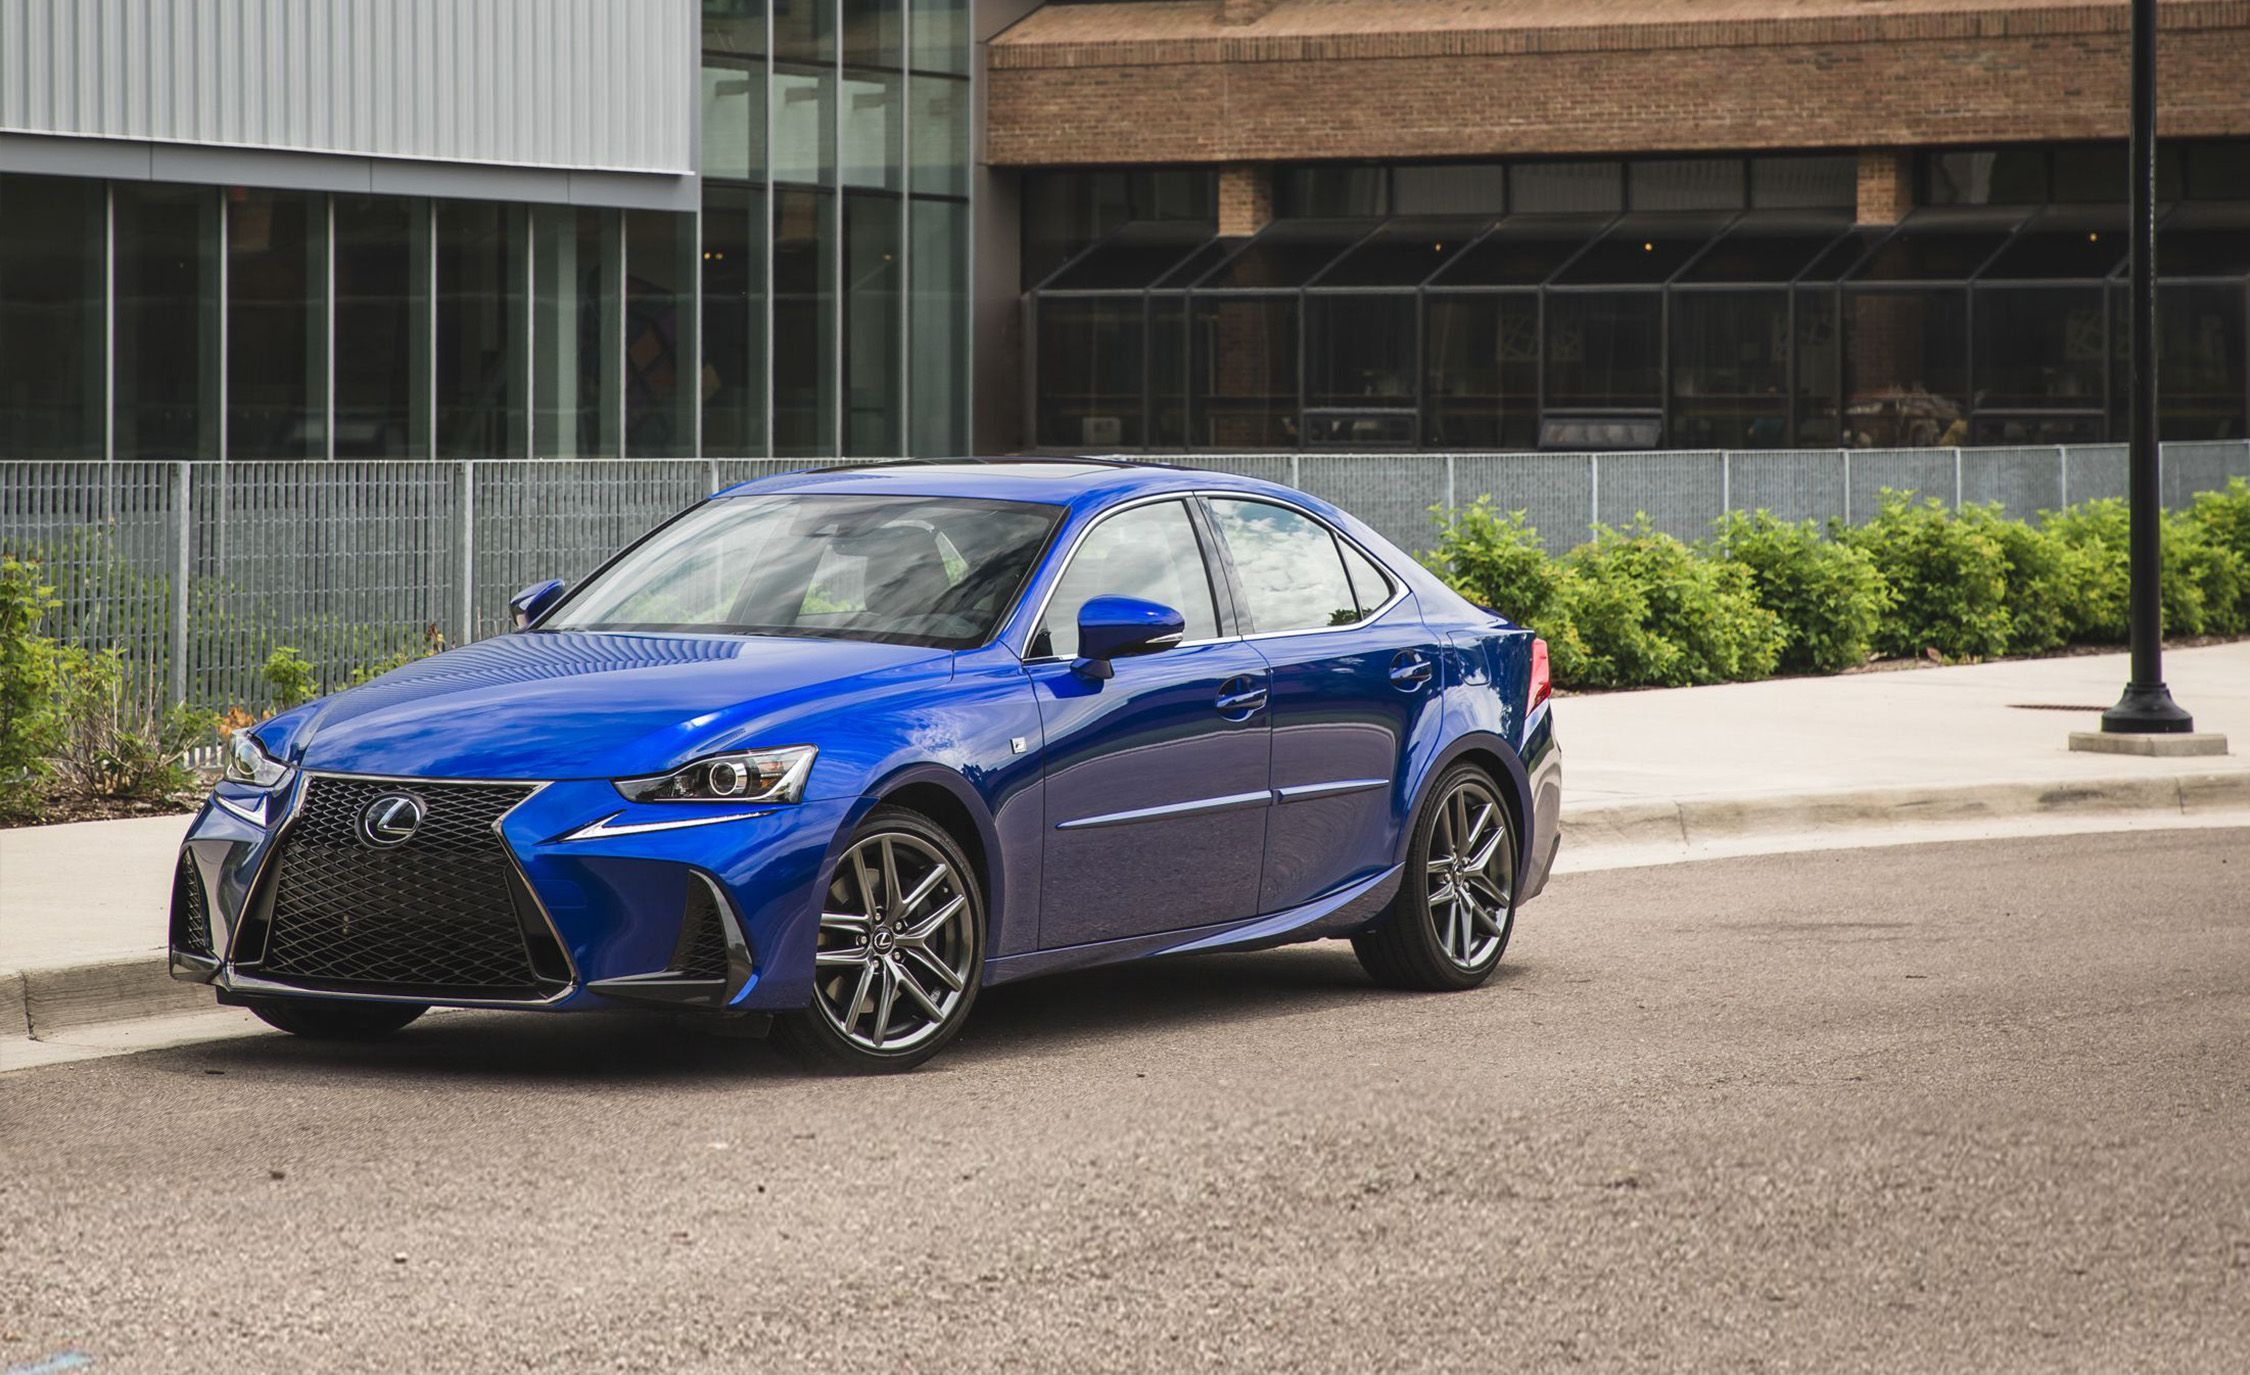 2019 lexus is reviews | lexus is price, photos, and specs | car and